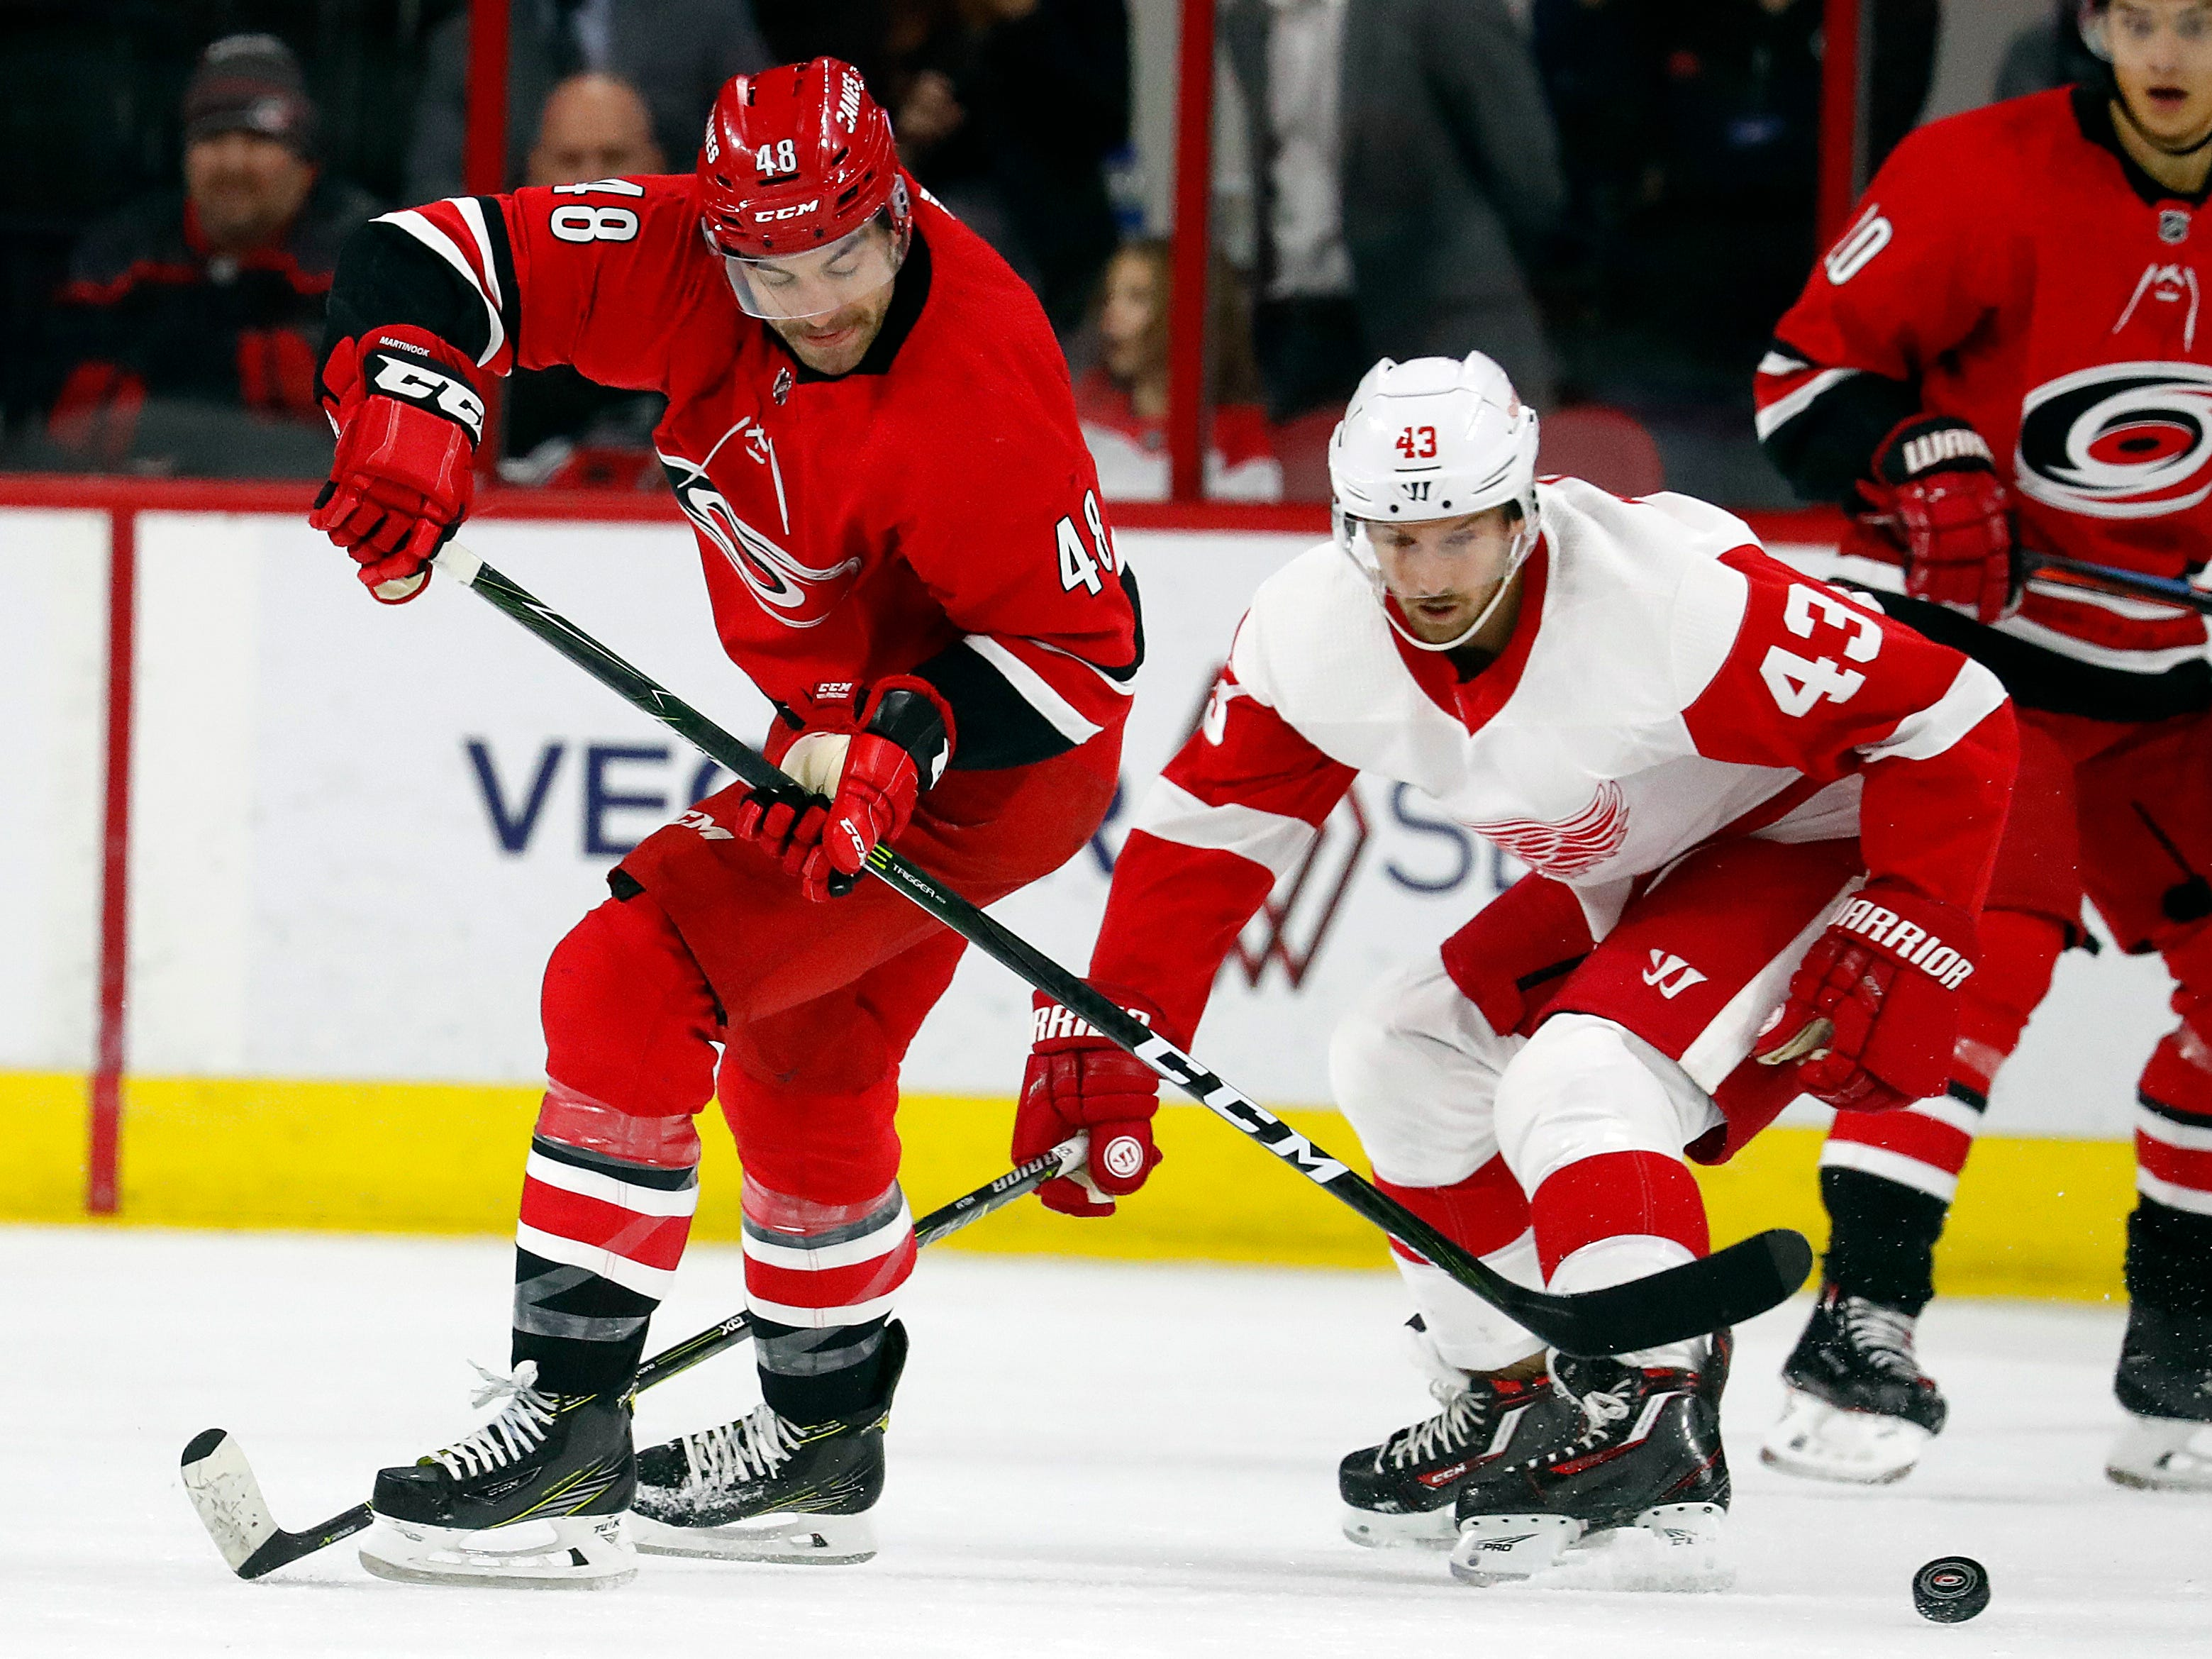 Carolina Hurricanes' Jordan Martinook (48) has the puck tipped away by Detroit Red Wings' Darren Helm (43) during the first period.